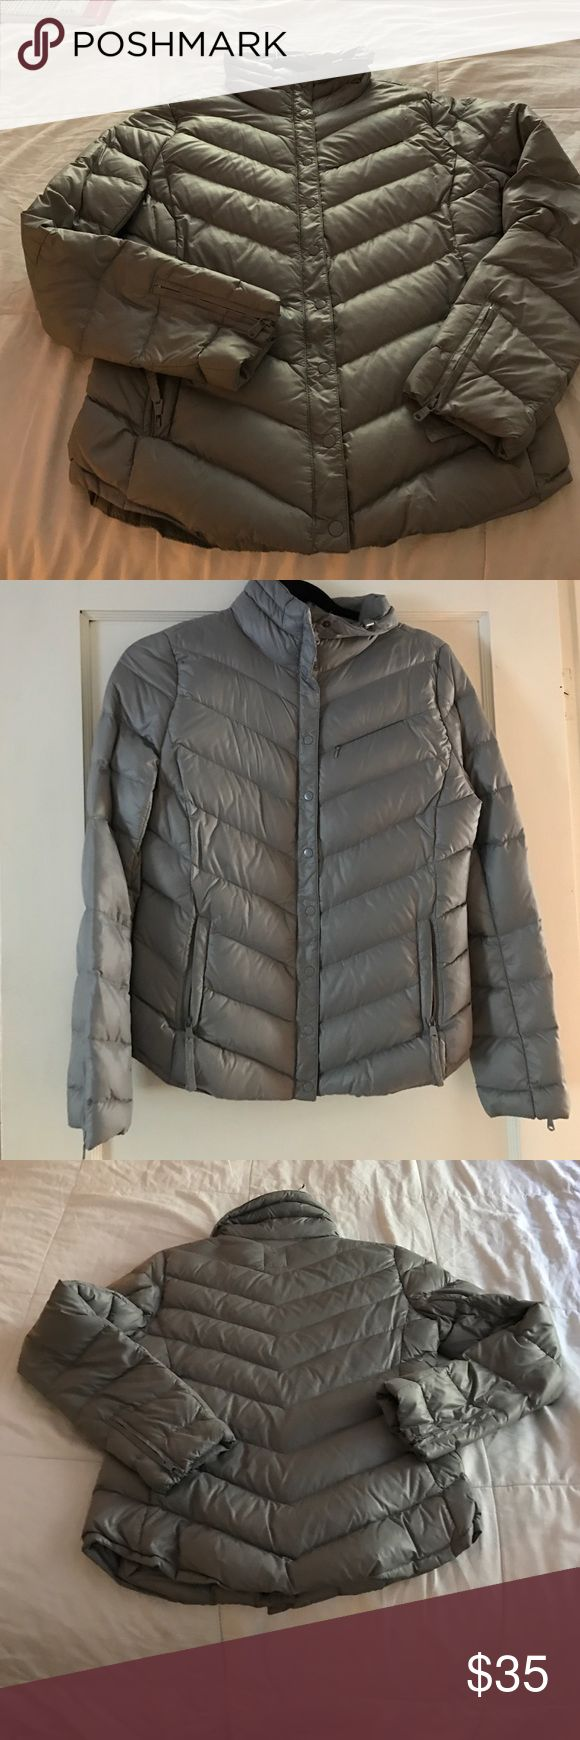 GAP jacket Thin puffy GAP jacket. Zips and buttons in the front. GAP Jackets & Coats Puffers